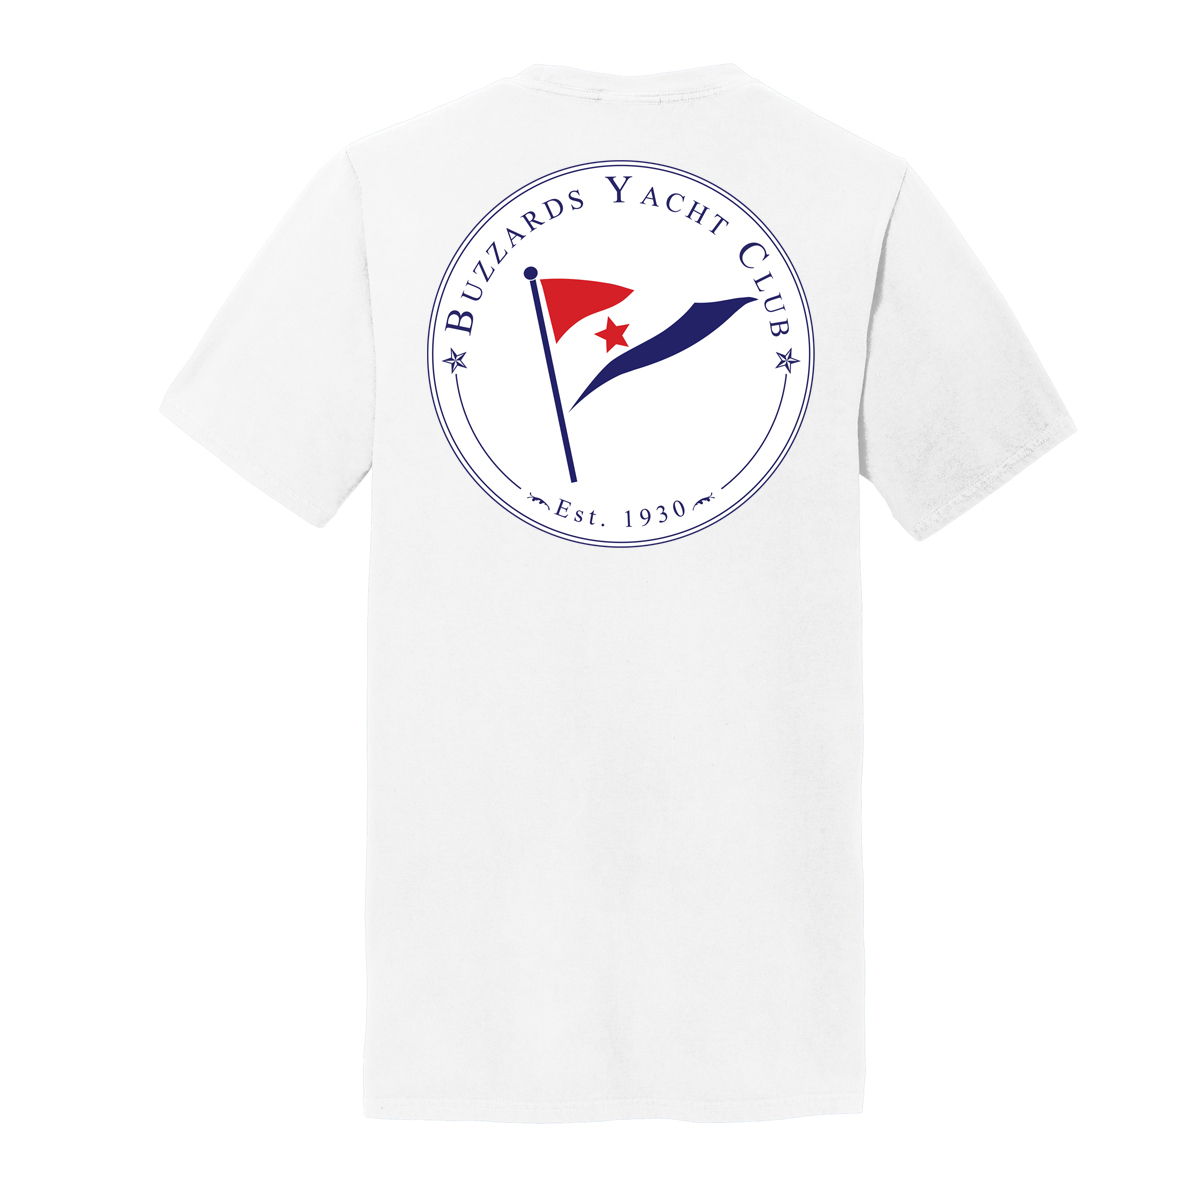 Buzzards Yacht Club - Men's Short Sleeve Junior Member Tee